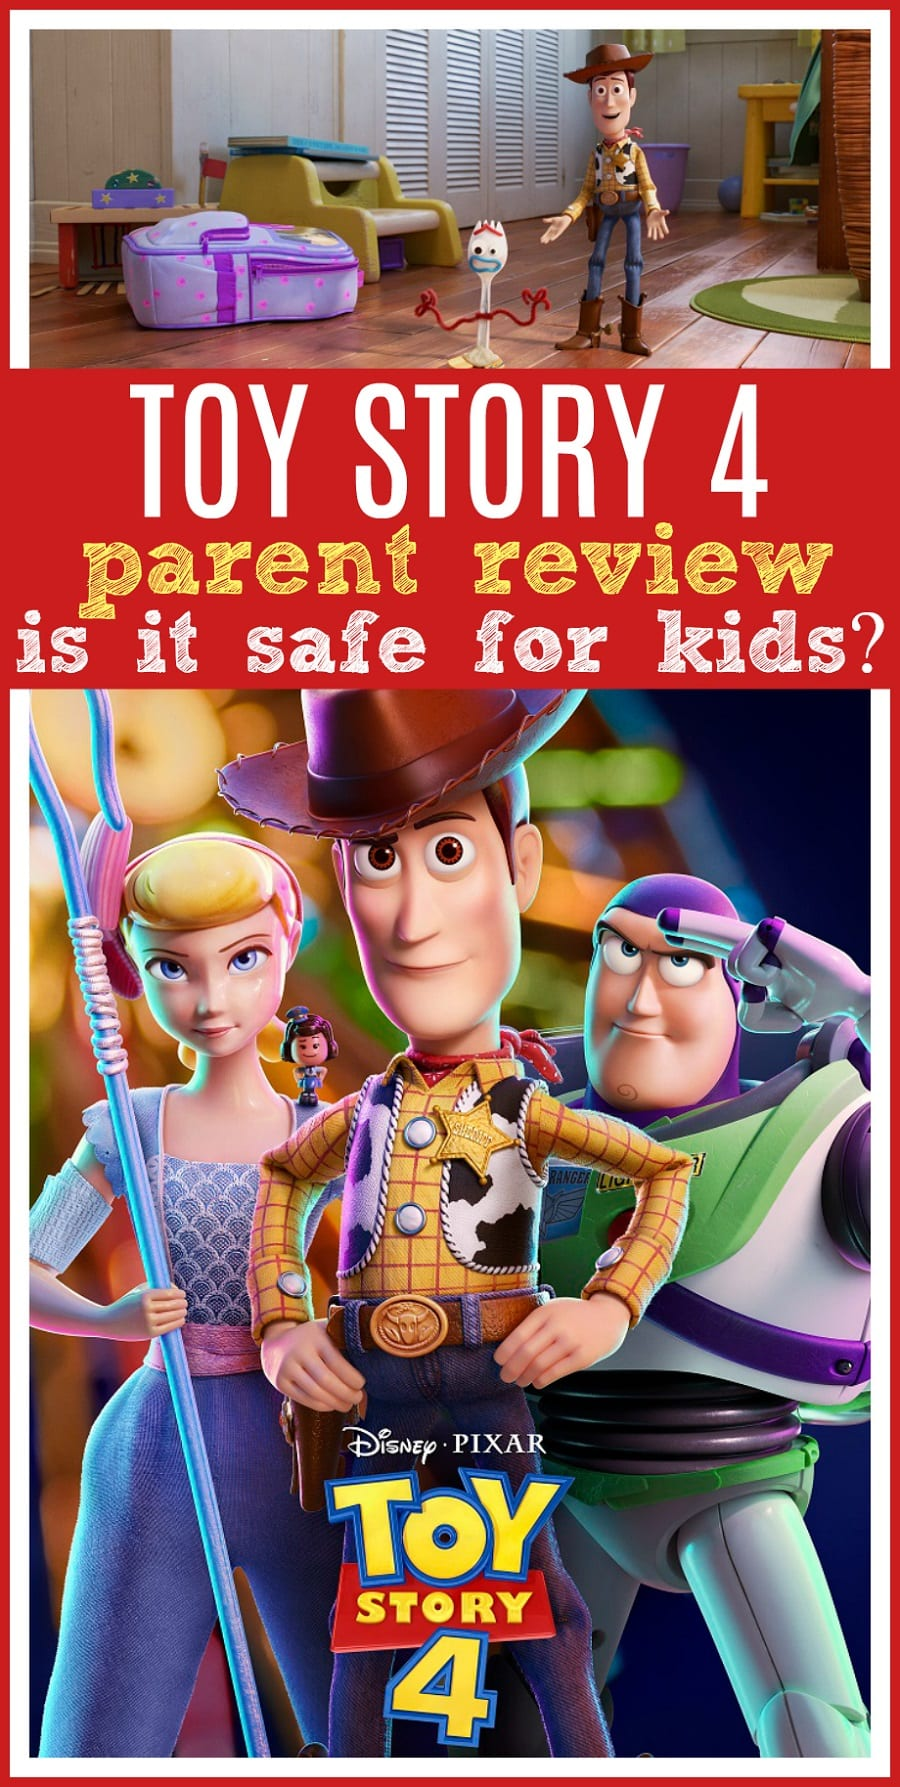 Toy story 4 review for kids